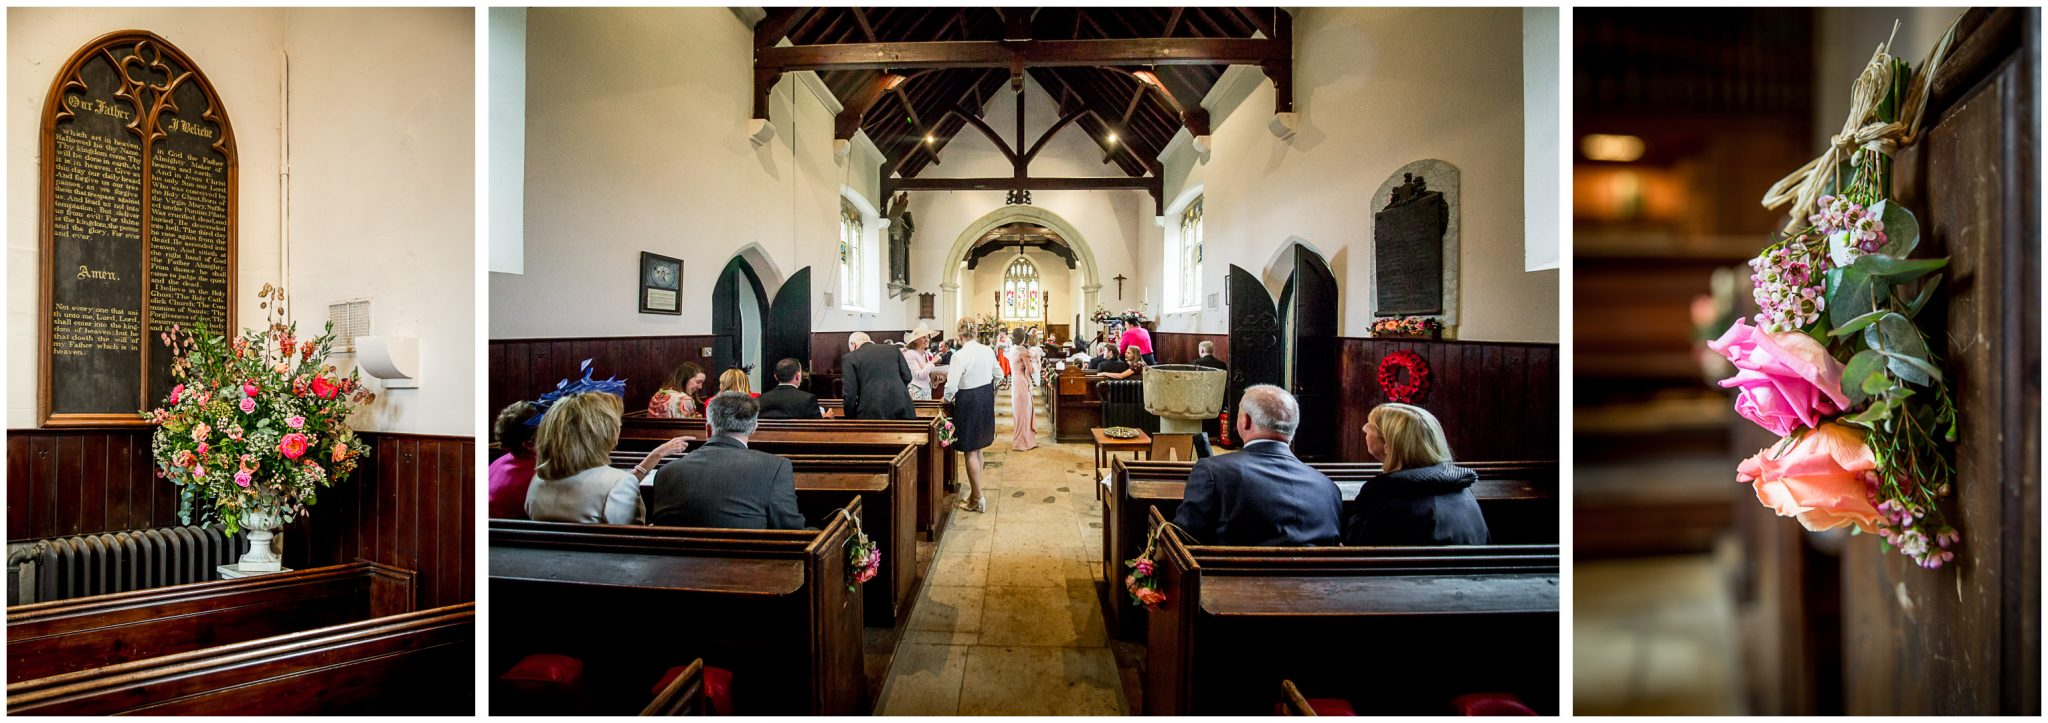 Church interior as wedding guests arrive